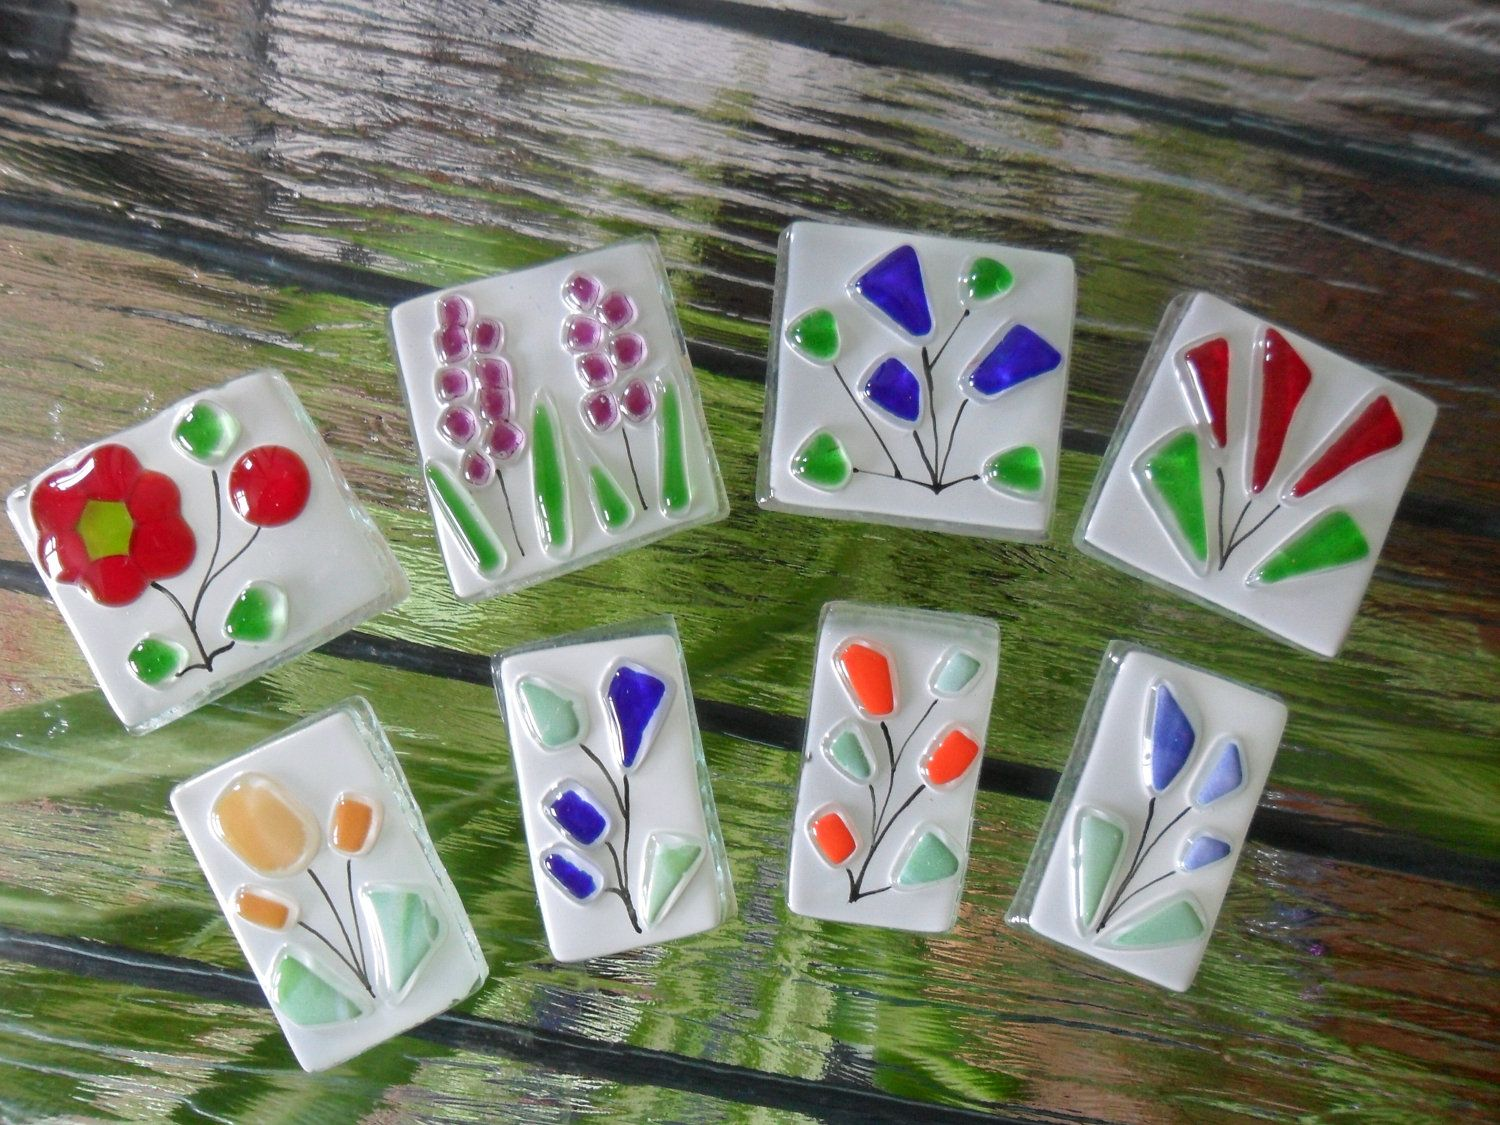 Mosaic glass tile for crafts - Fused Glass Glass Flower Tiles Handmade Mosaic Glass Art Craft Projects